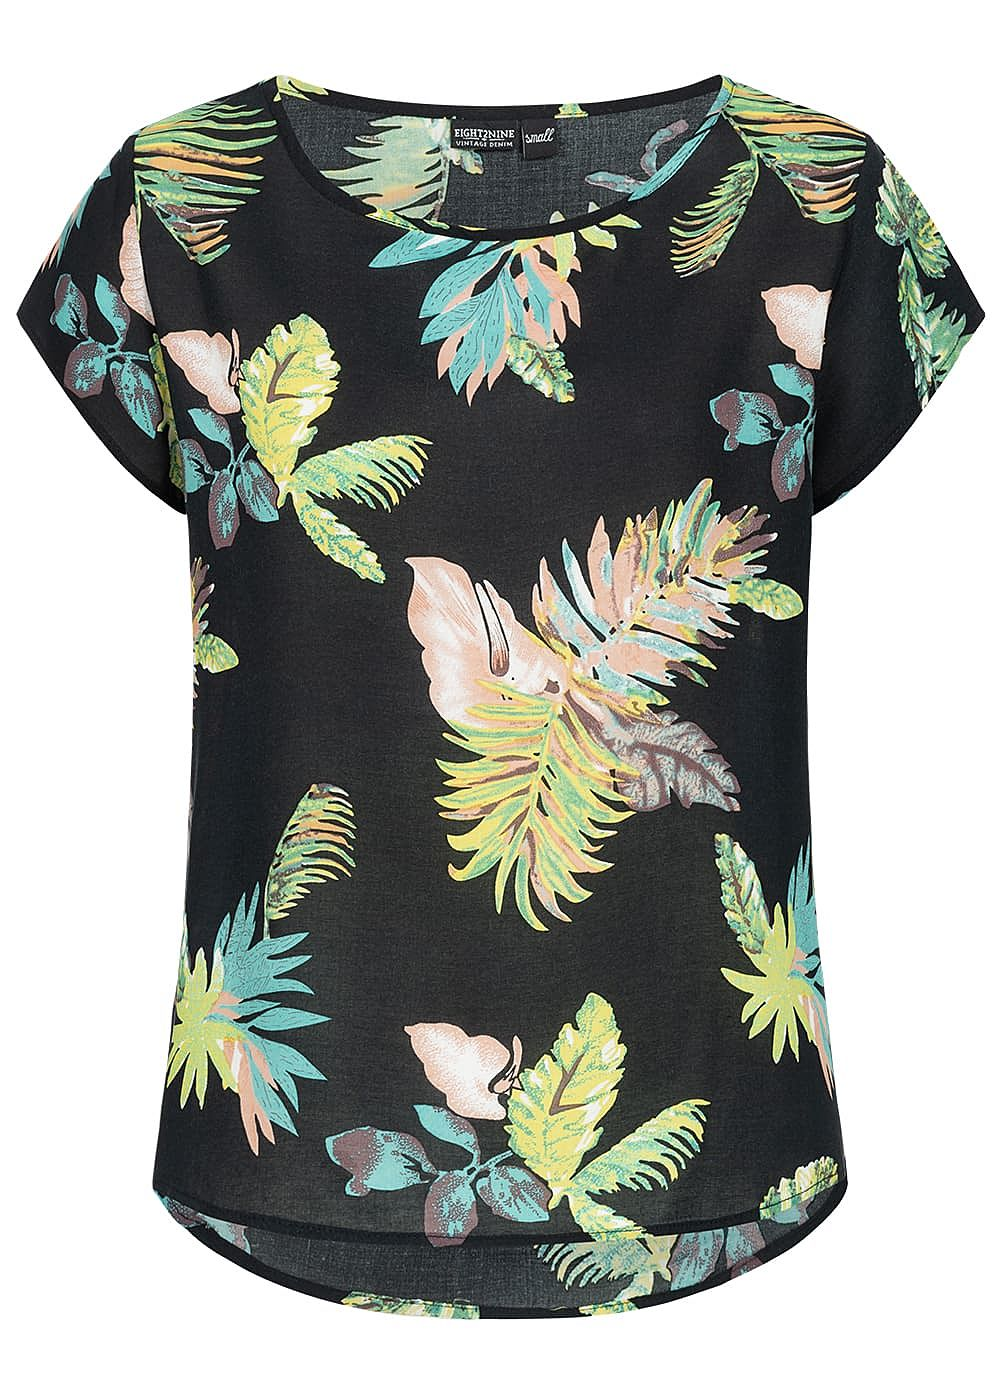 Eight2Nine Damen Blouse Shirt Floral Print schwarz grün - Art.-Nr.: 19041280